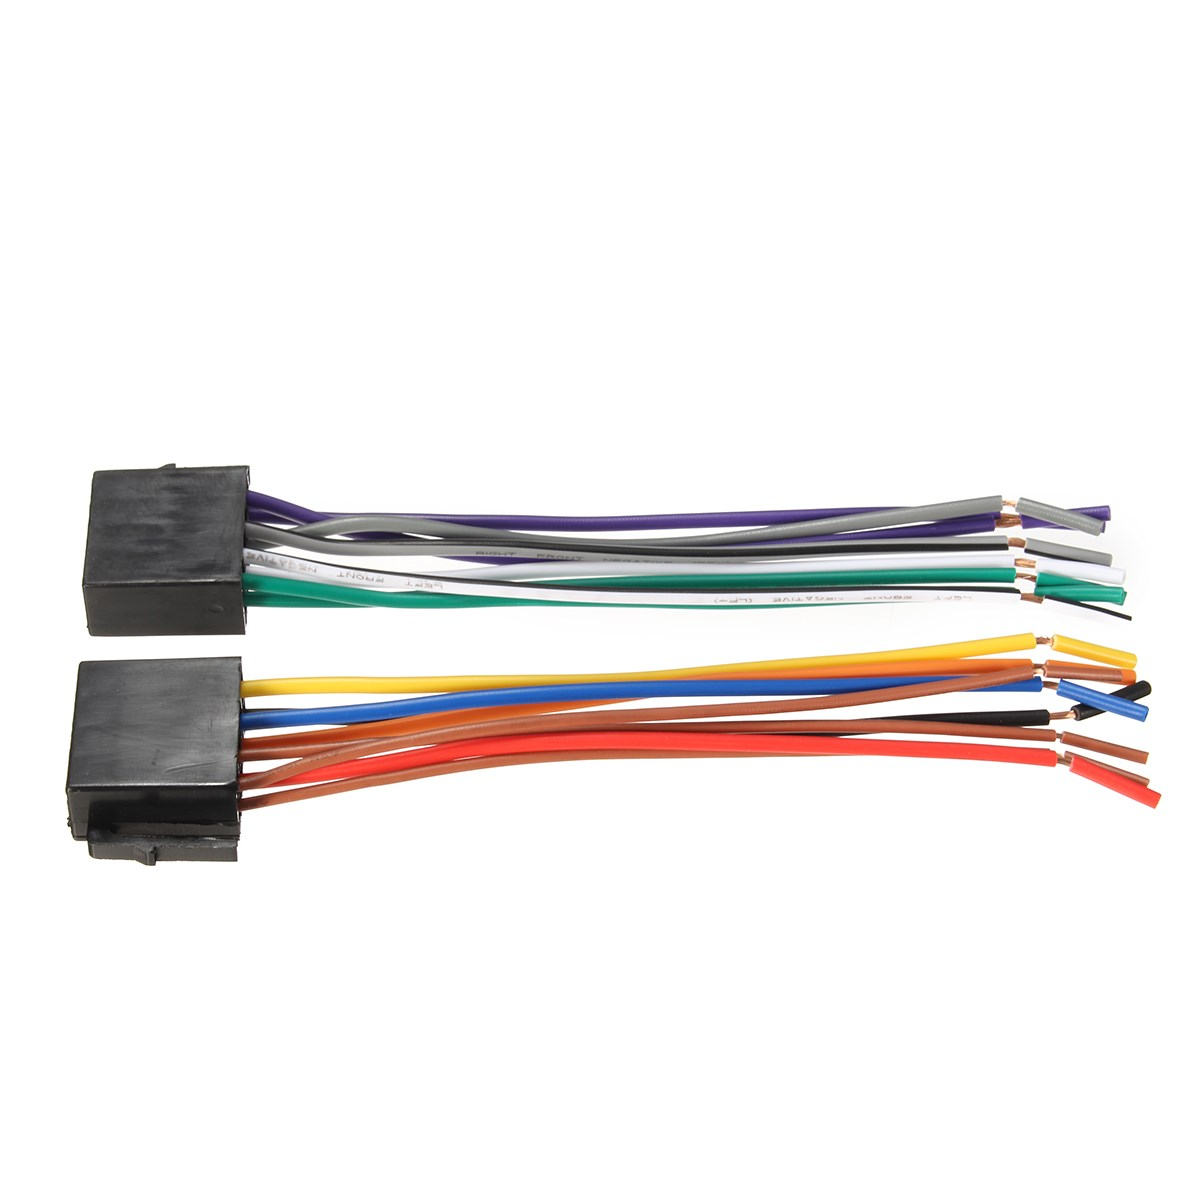 Universal Wire Harness Adapter Connector Cable Radio Wiring Connector Plug for Auto Car Stereo System universal wire harness adapter connector cable radio wiring universal wiring harness connector at bayanpartner.co